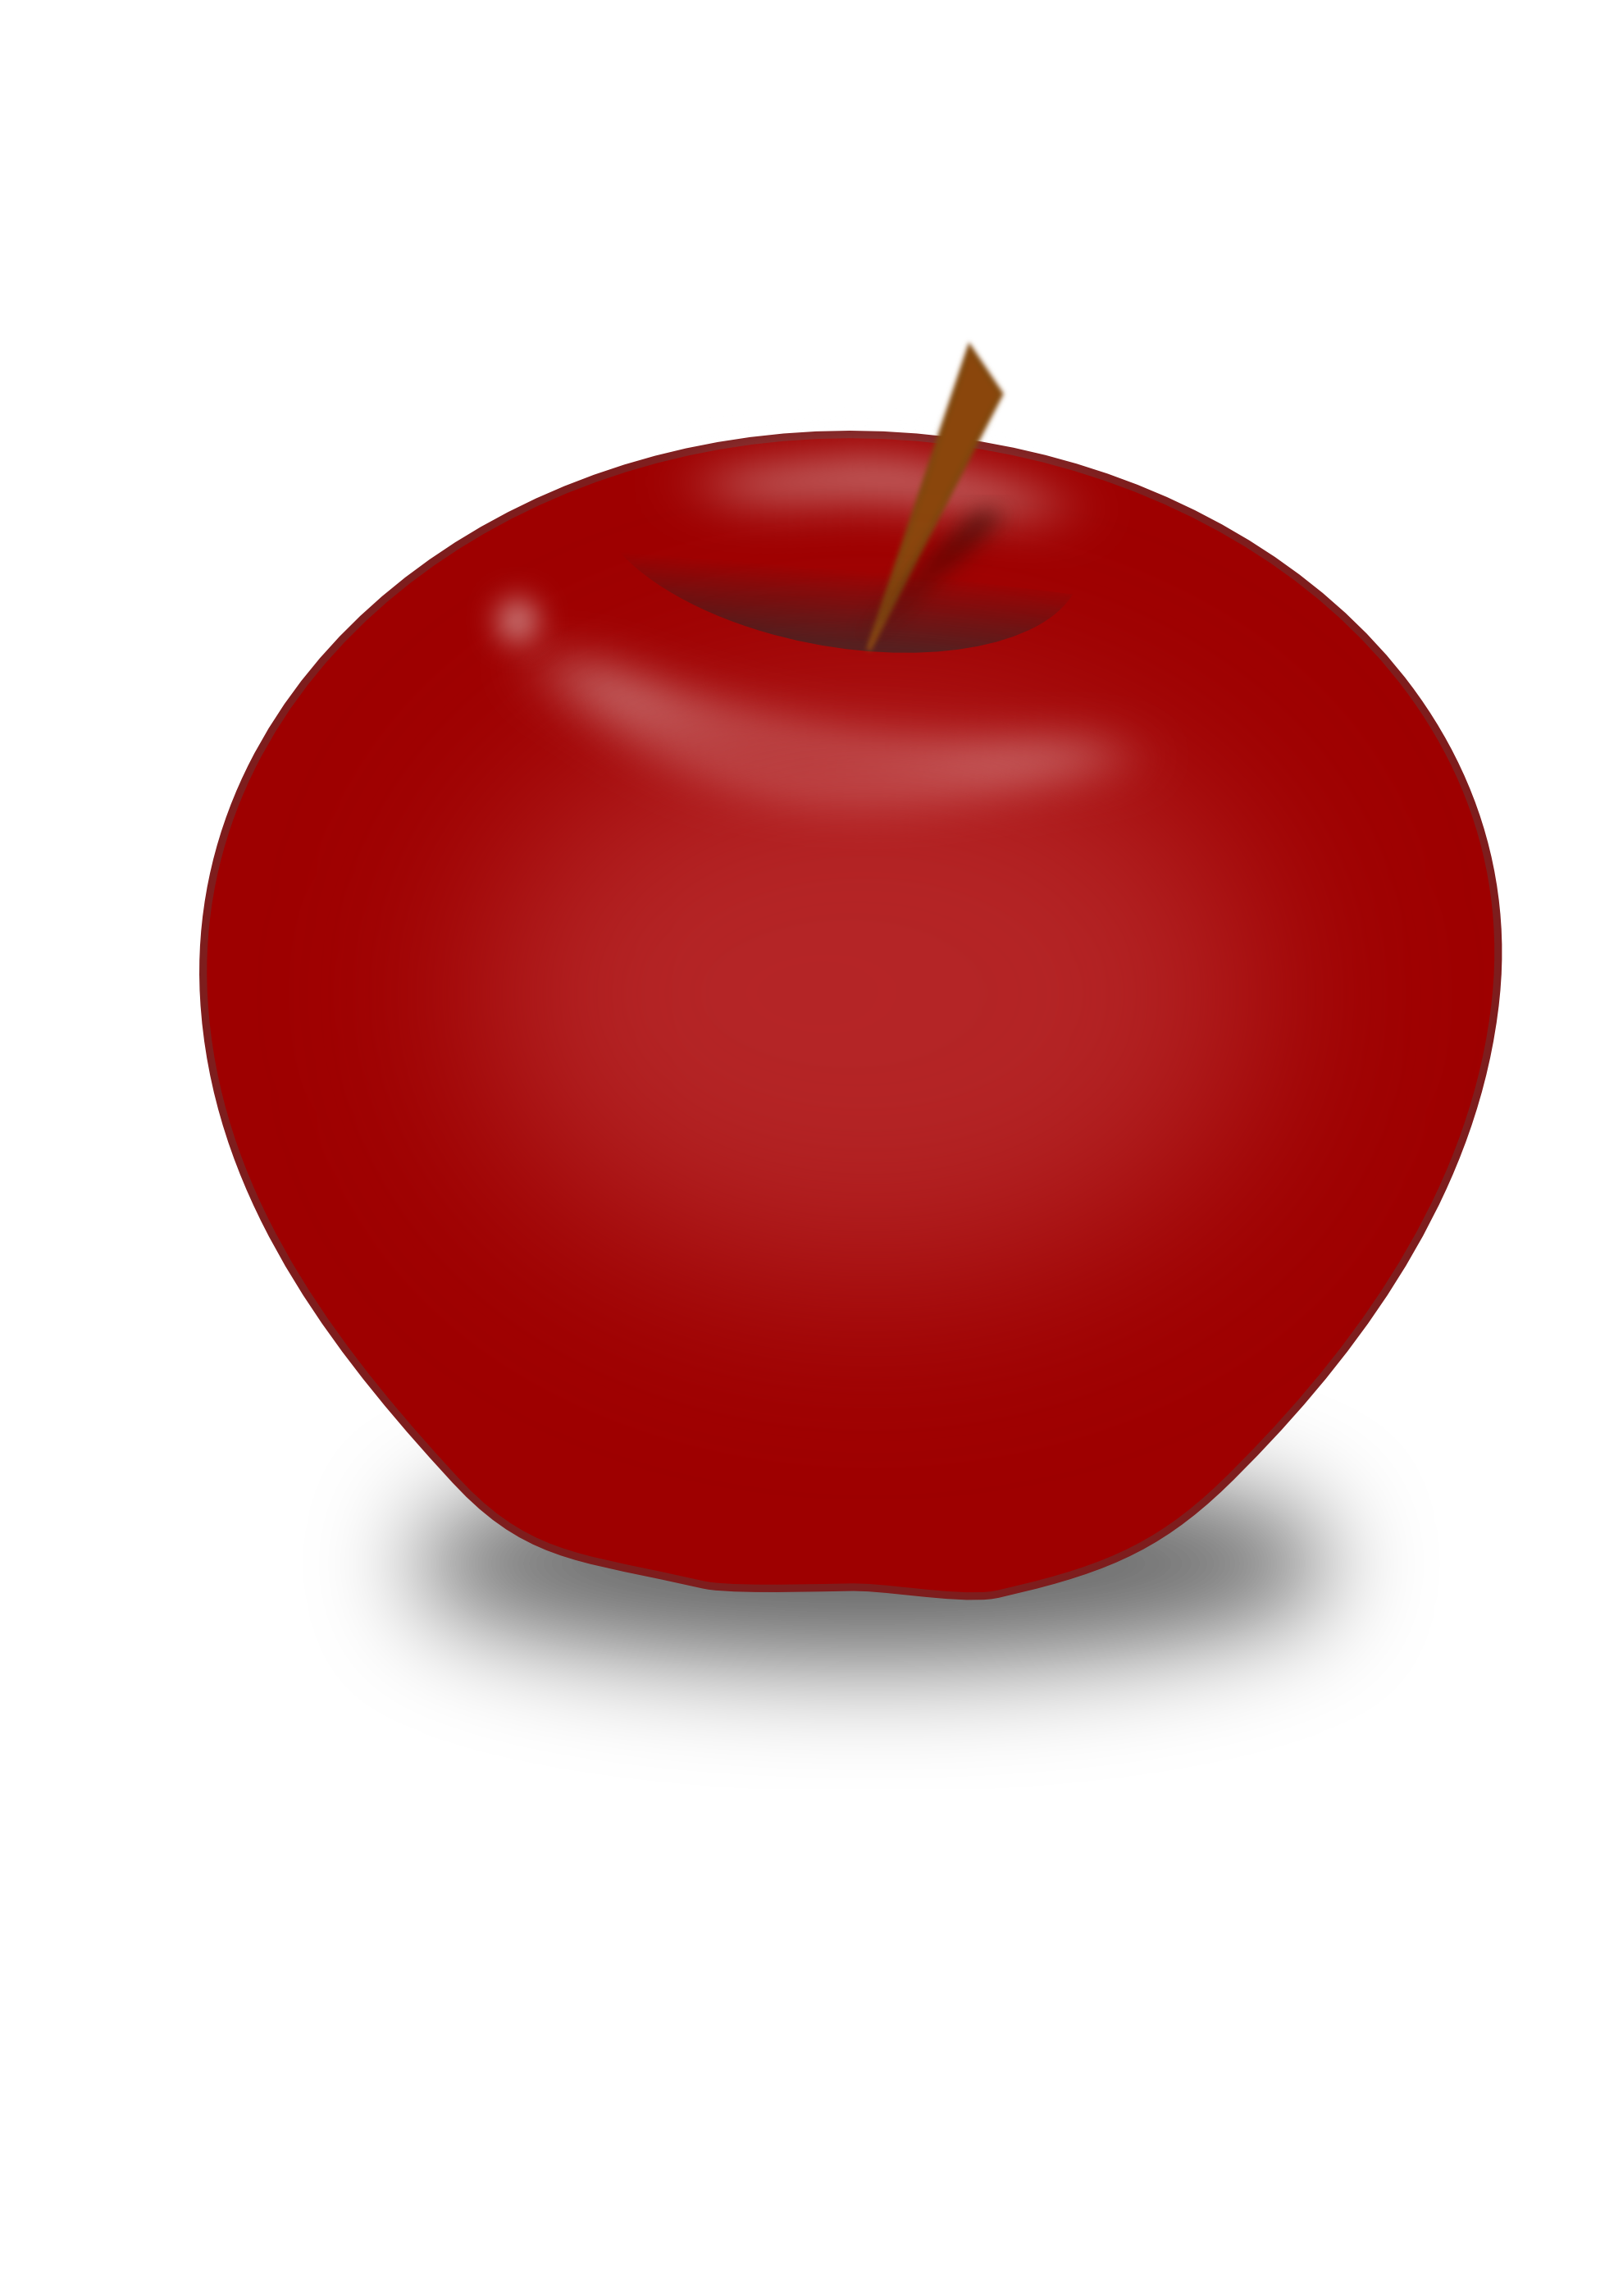 Red Apple S Red Apple Apple Red